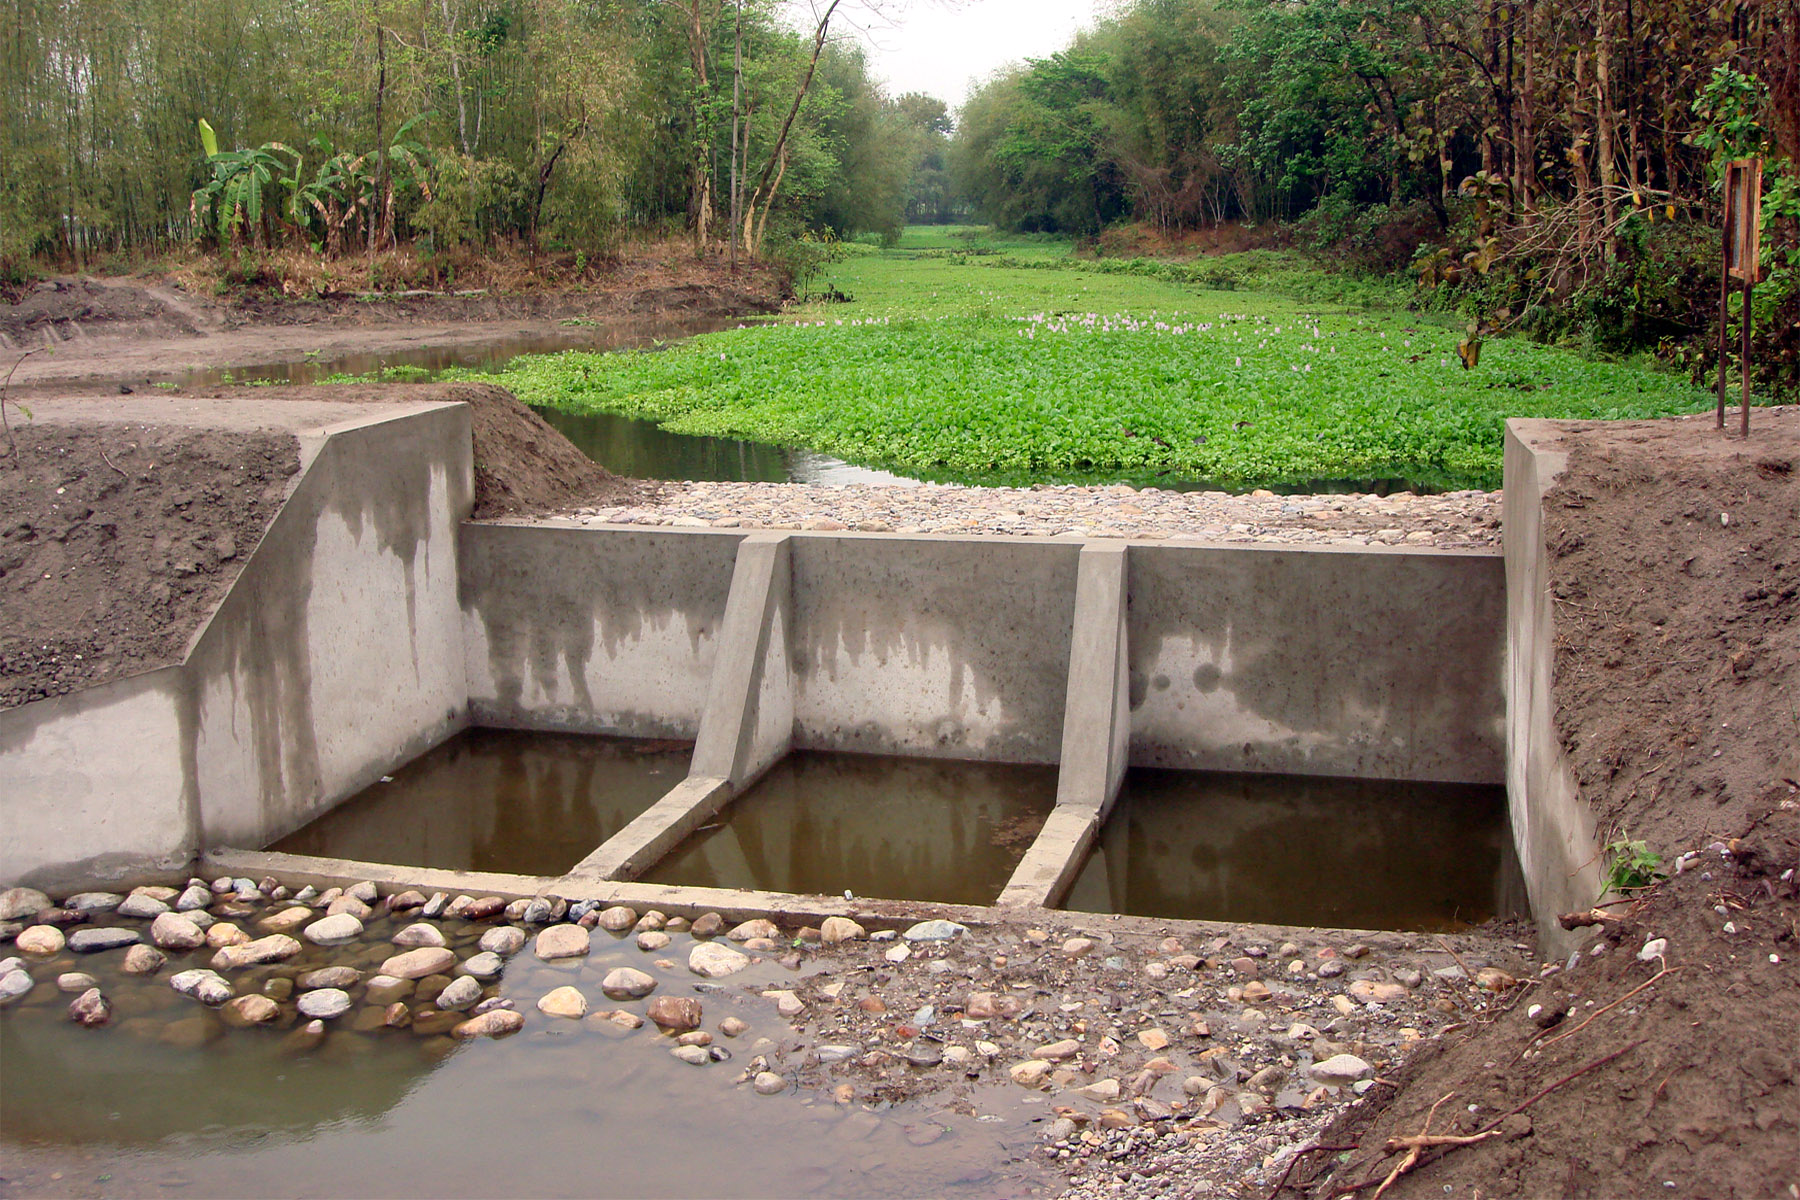 thesis on watershed management in india About find out more information about hydrology & water management hydrology is studying the movement, distribution and quality of water on the planet, while water.